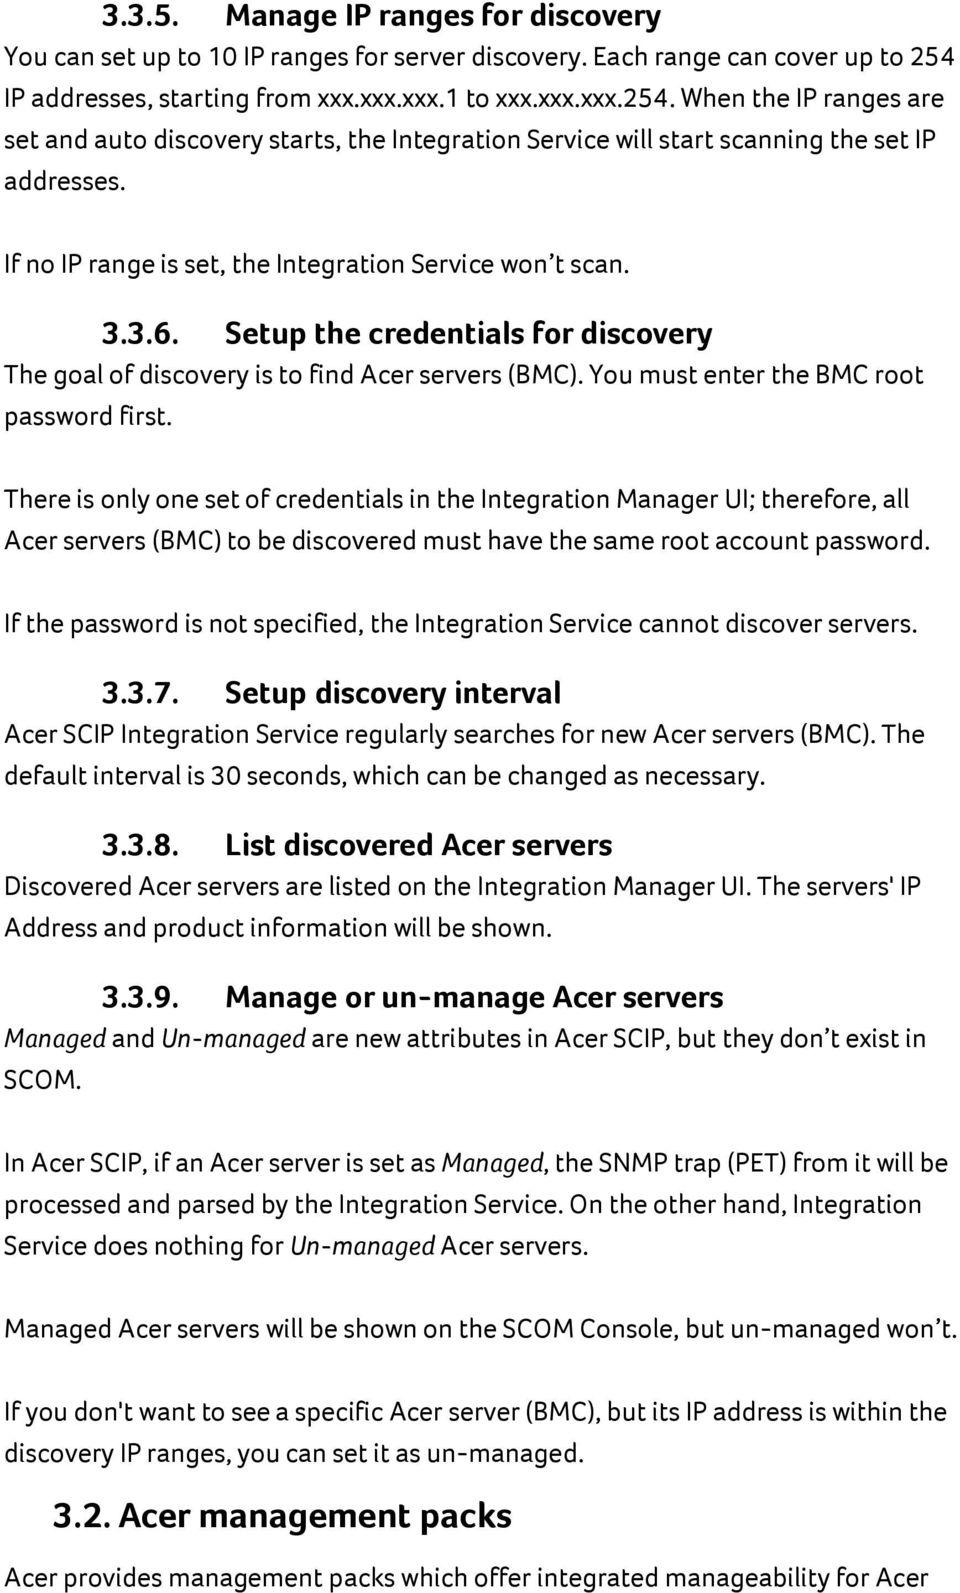 If no IP range is set, the Integration Service won t scan. 3.3.6. Setup the credentials for discovery The goal of discovery is to find Acer servers (BMC). You must enter the BMC root password first.